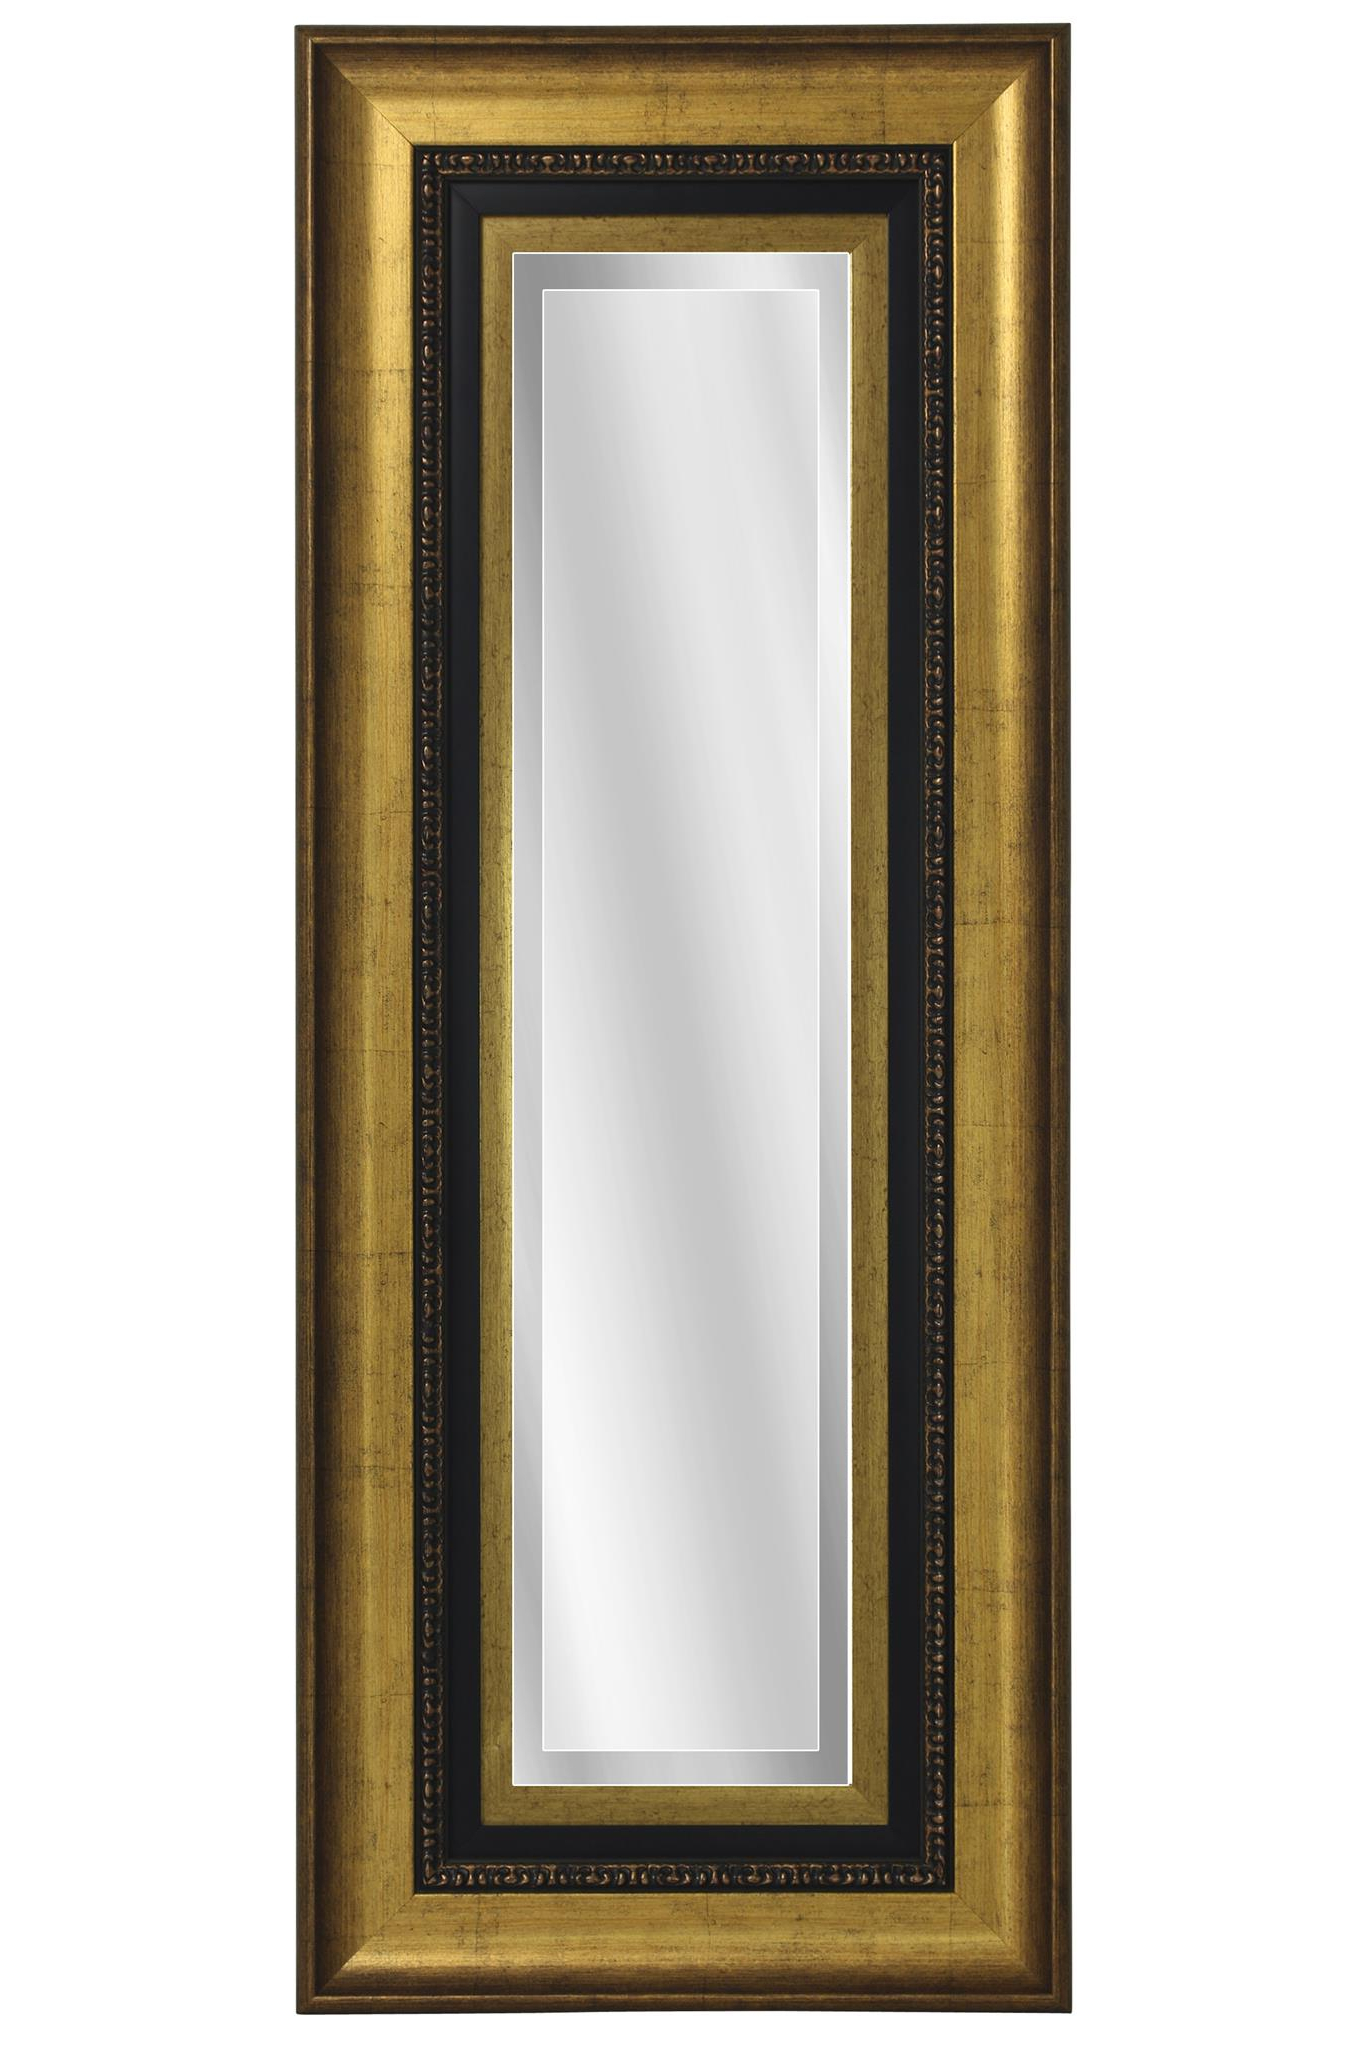 Black Frame Wall Mirrors Throughout Famous Gold Over Black Frame Rectangular Wall Mirror (View 15 of 20)